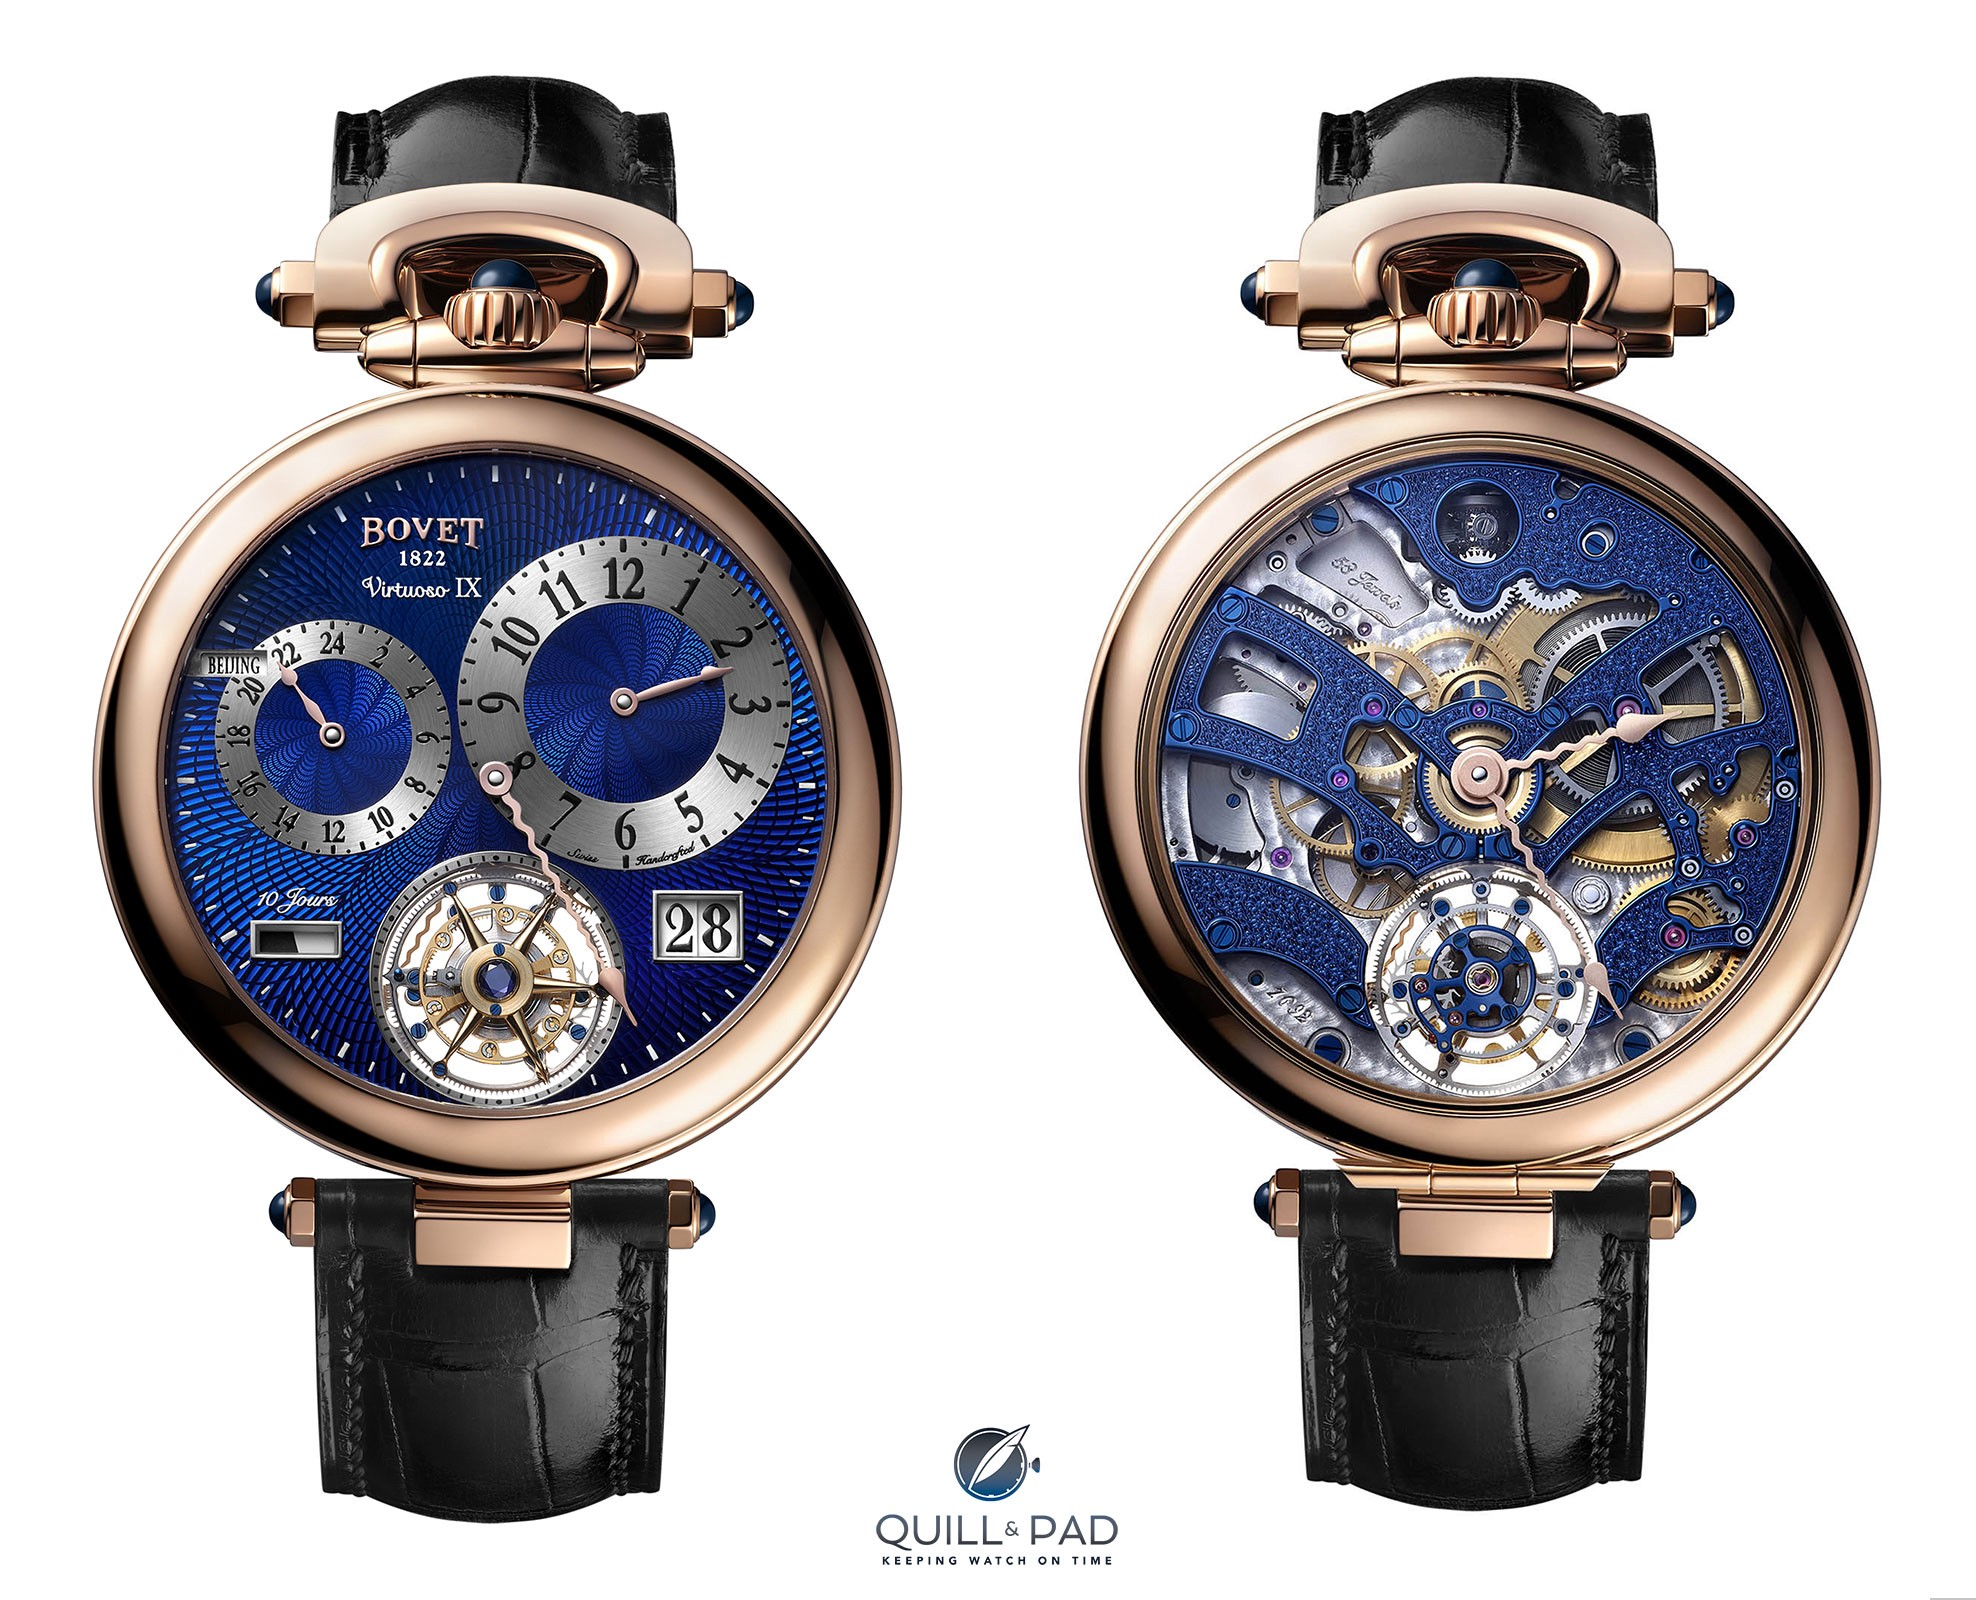 Two faces of the Bovet Virtuoso IX